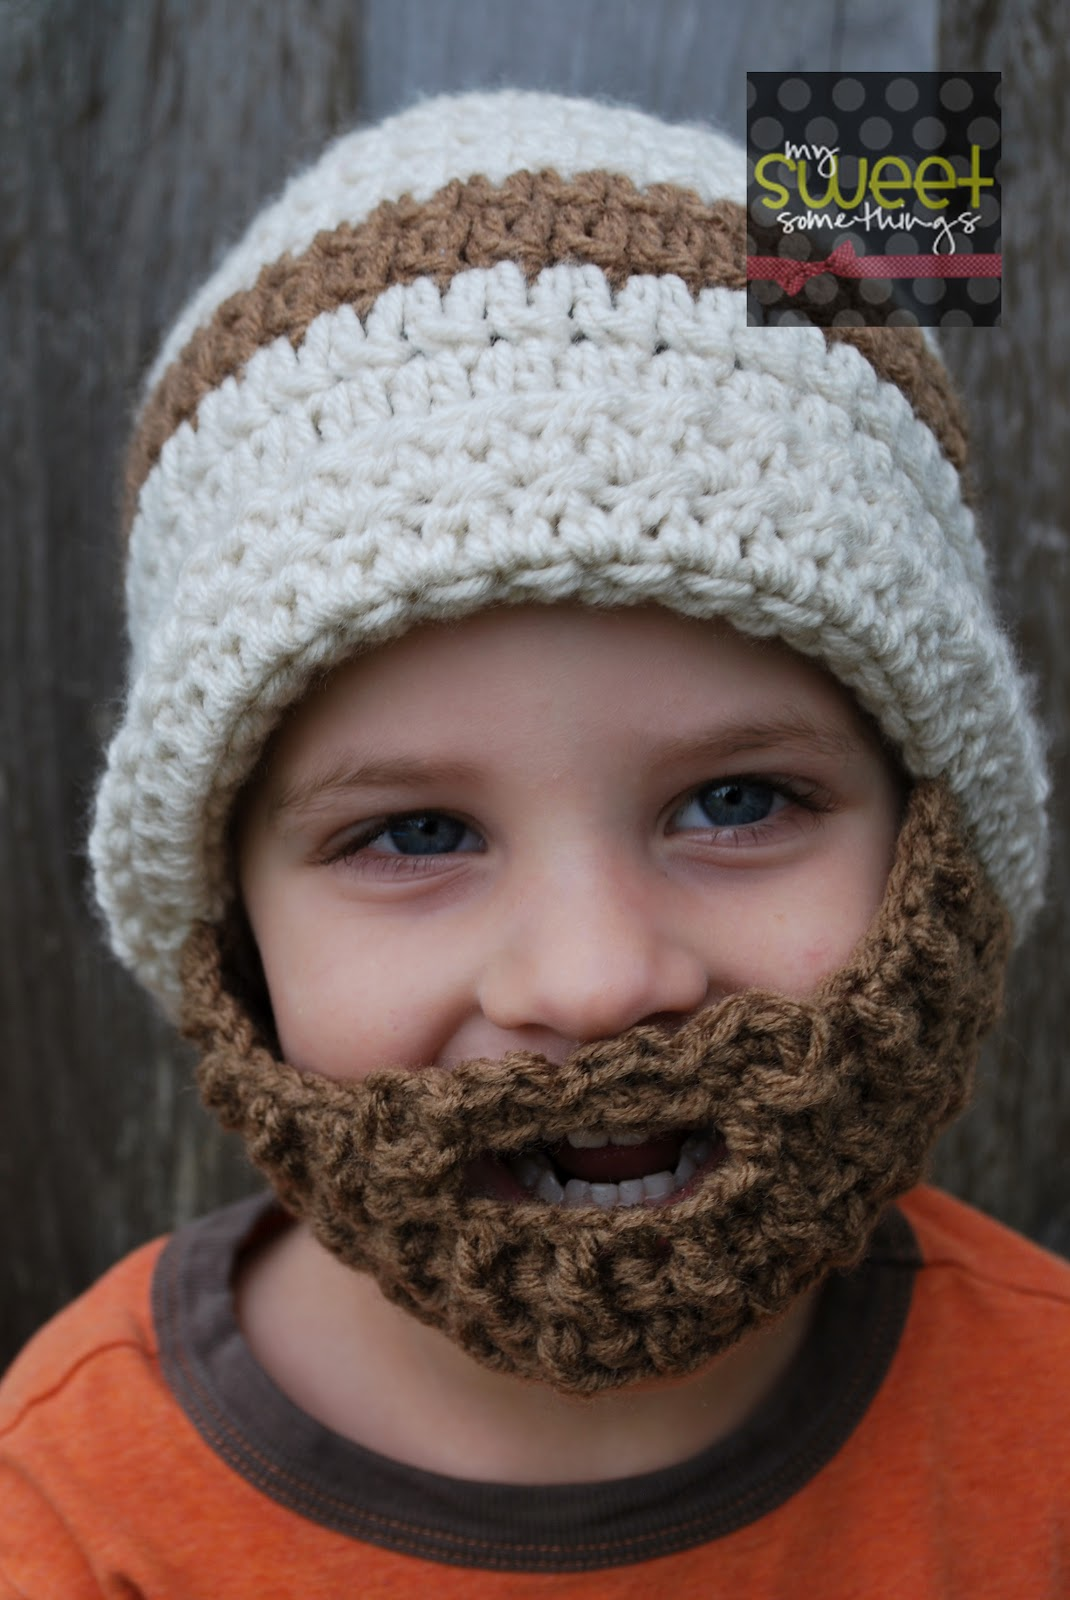 Beanie Hat With Beard Crochet Pattern Free : My Sweet Somethings: Bearded Hat for Kids!